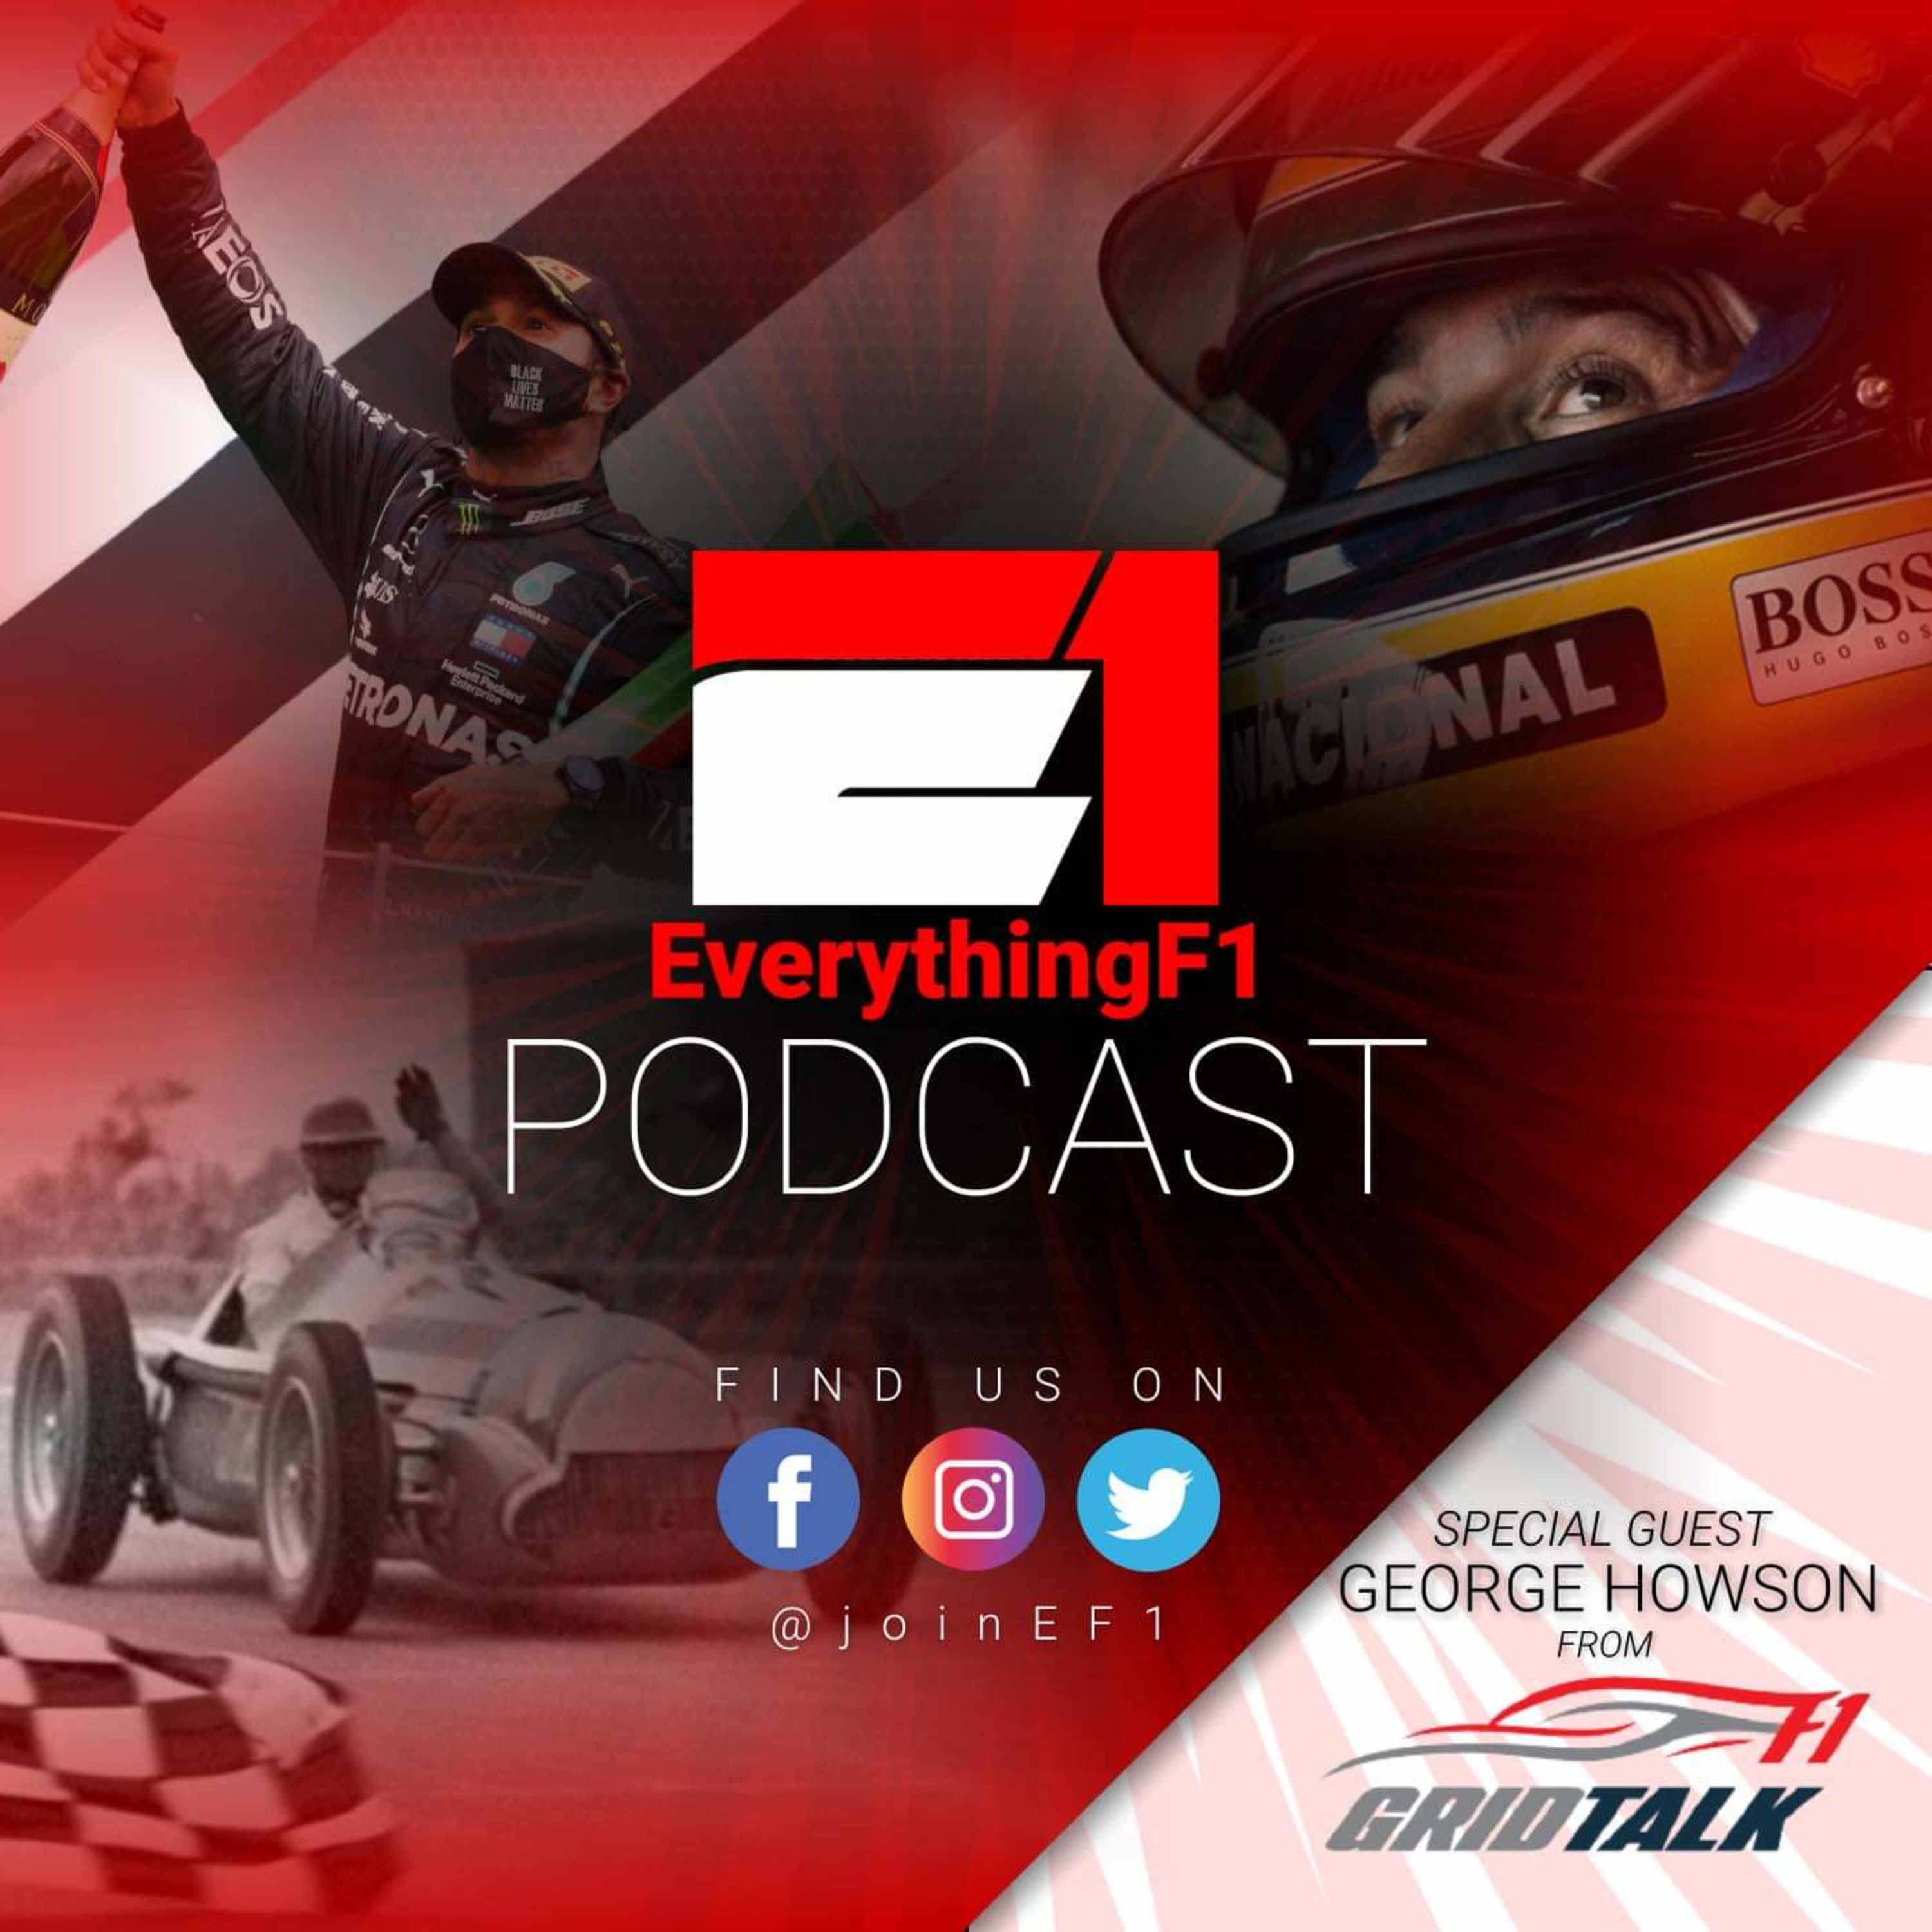 Ep 9 – Imola Grand Prix Preview with George Howson from GridTalk